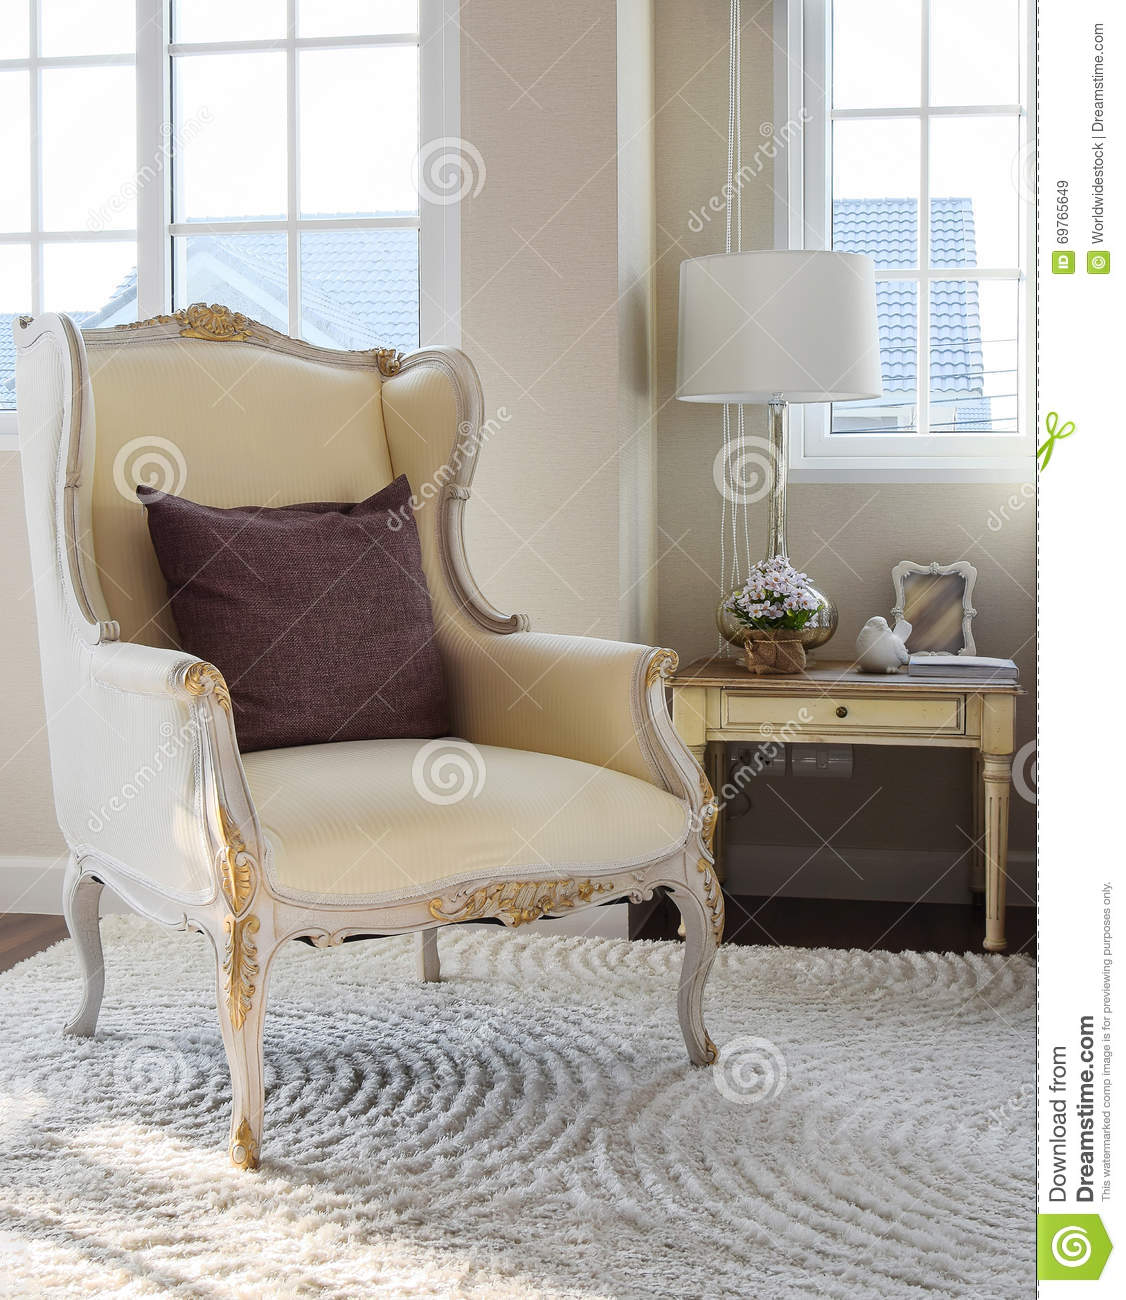 Retro Bedroom Chairs Persian Carpet Bedroom Blue Grey Bedroom Colour Scheme Bench Seat For Bedroom: Classic Chair With Brown Pillow On Carpet In Vintage